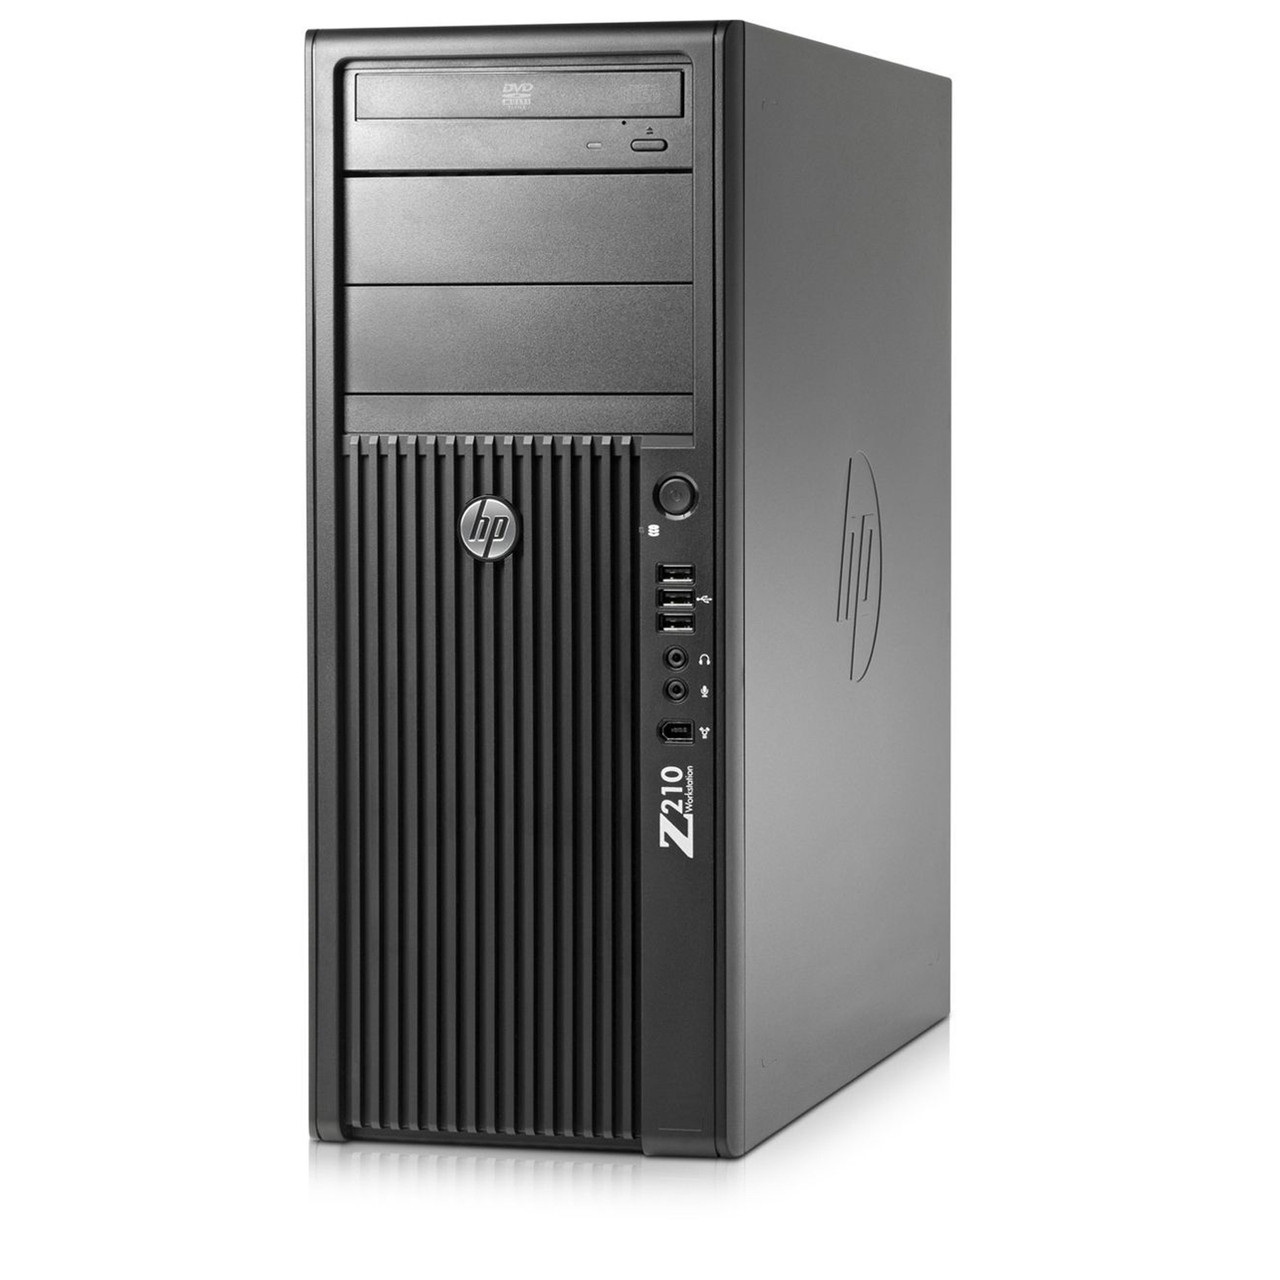 HP Z210 Workstation - Front View